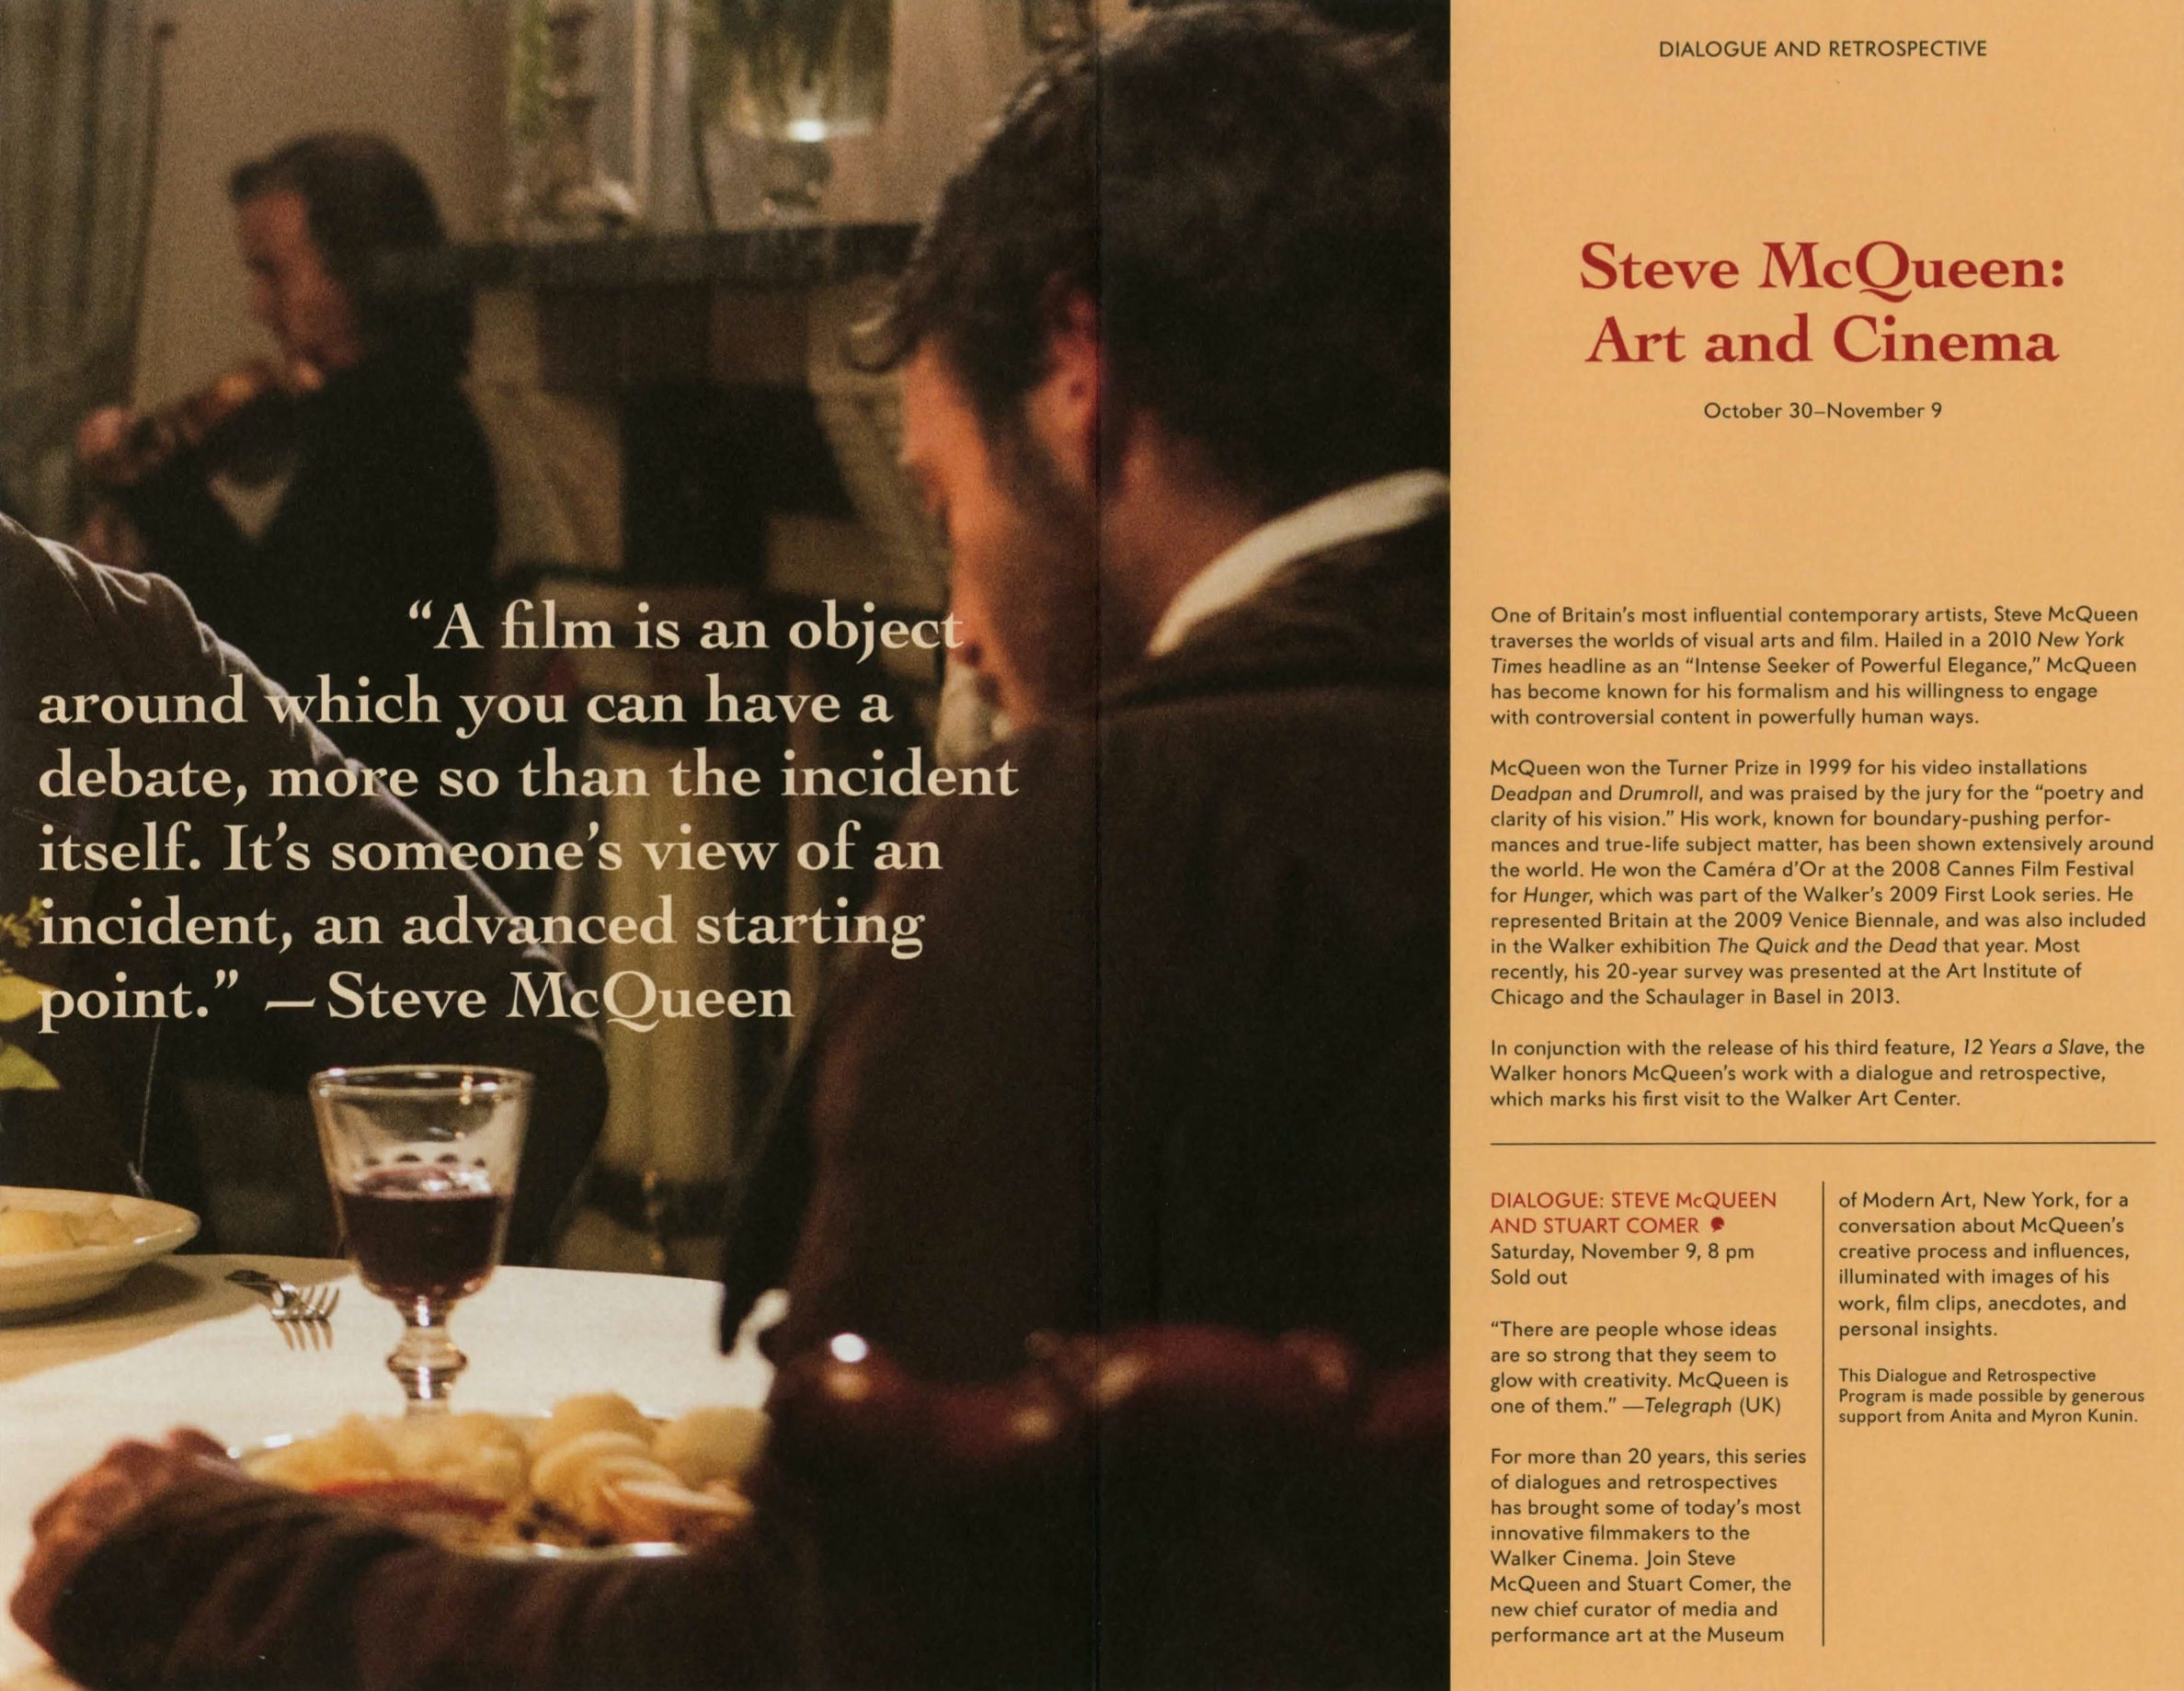 Steve McQueen Dialogue event brochure page 1